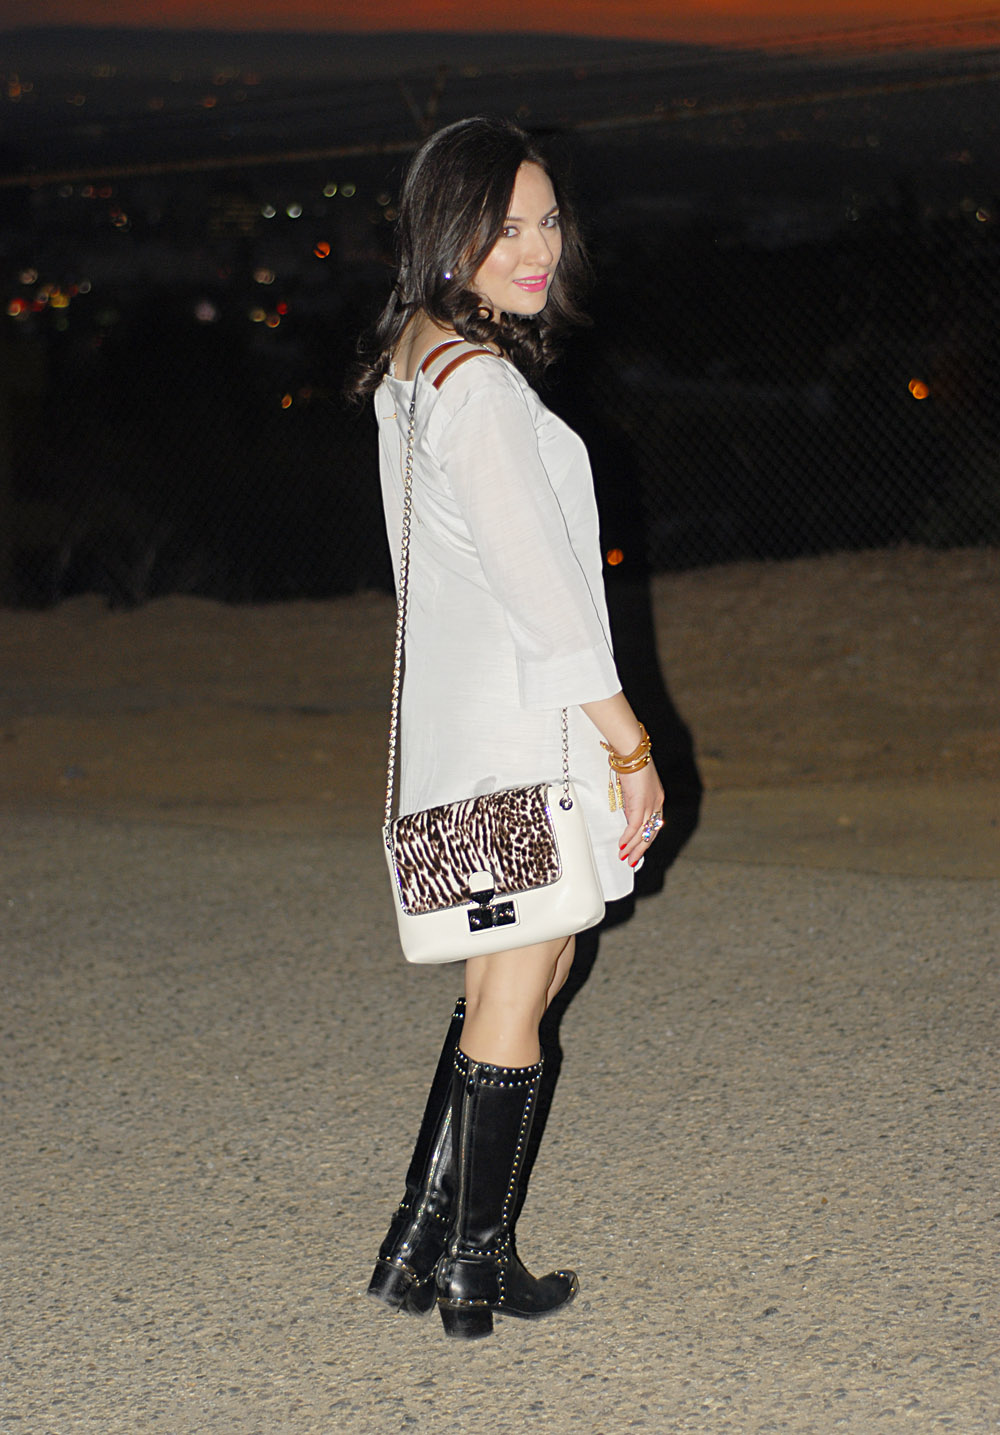 Winter White style trends for winter 2013 party dresses and studded boots by Prada